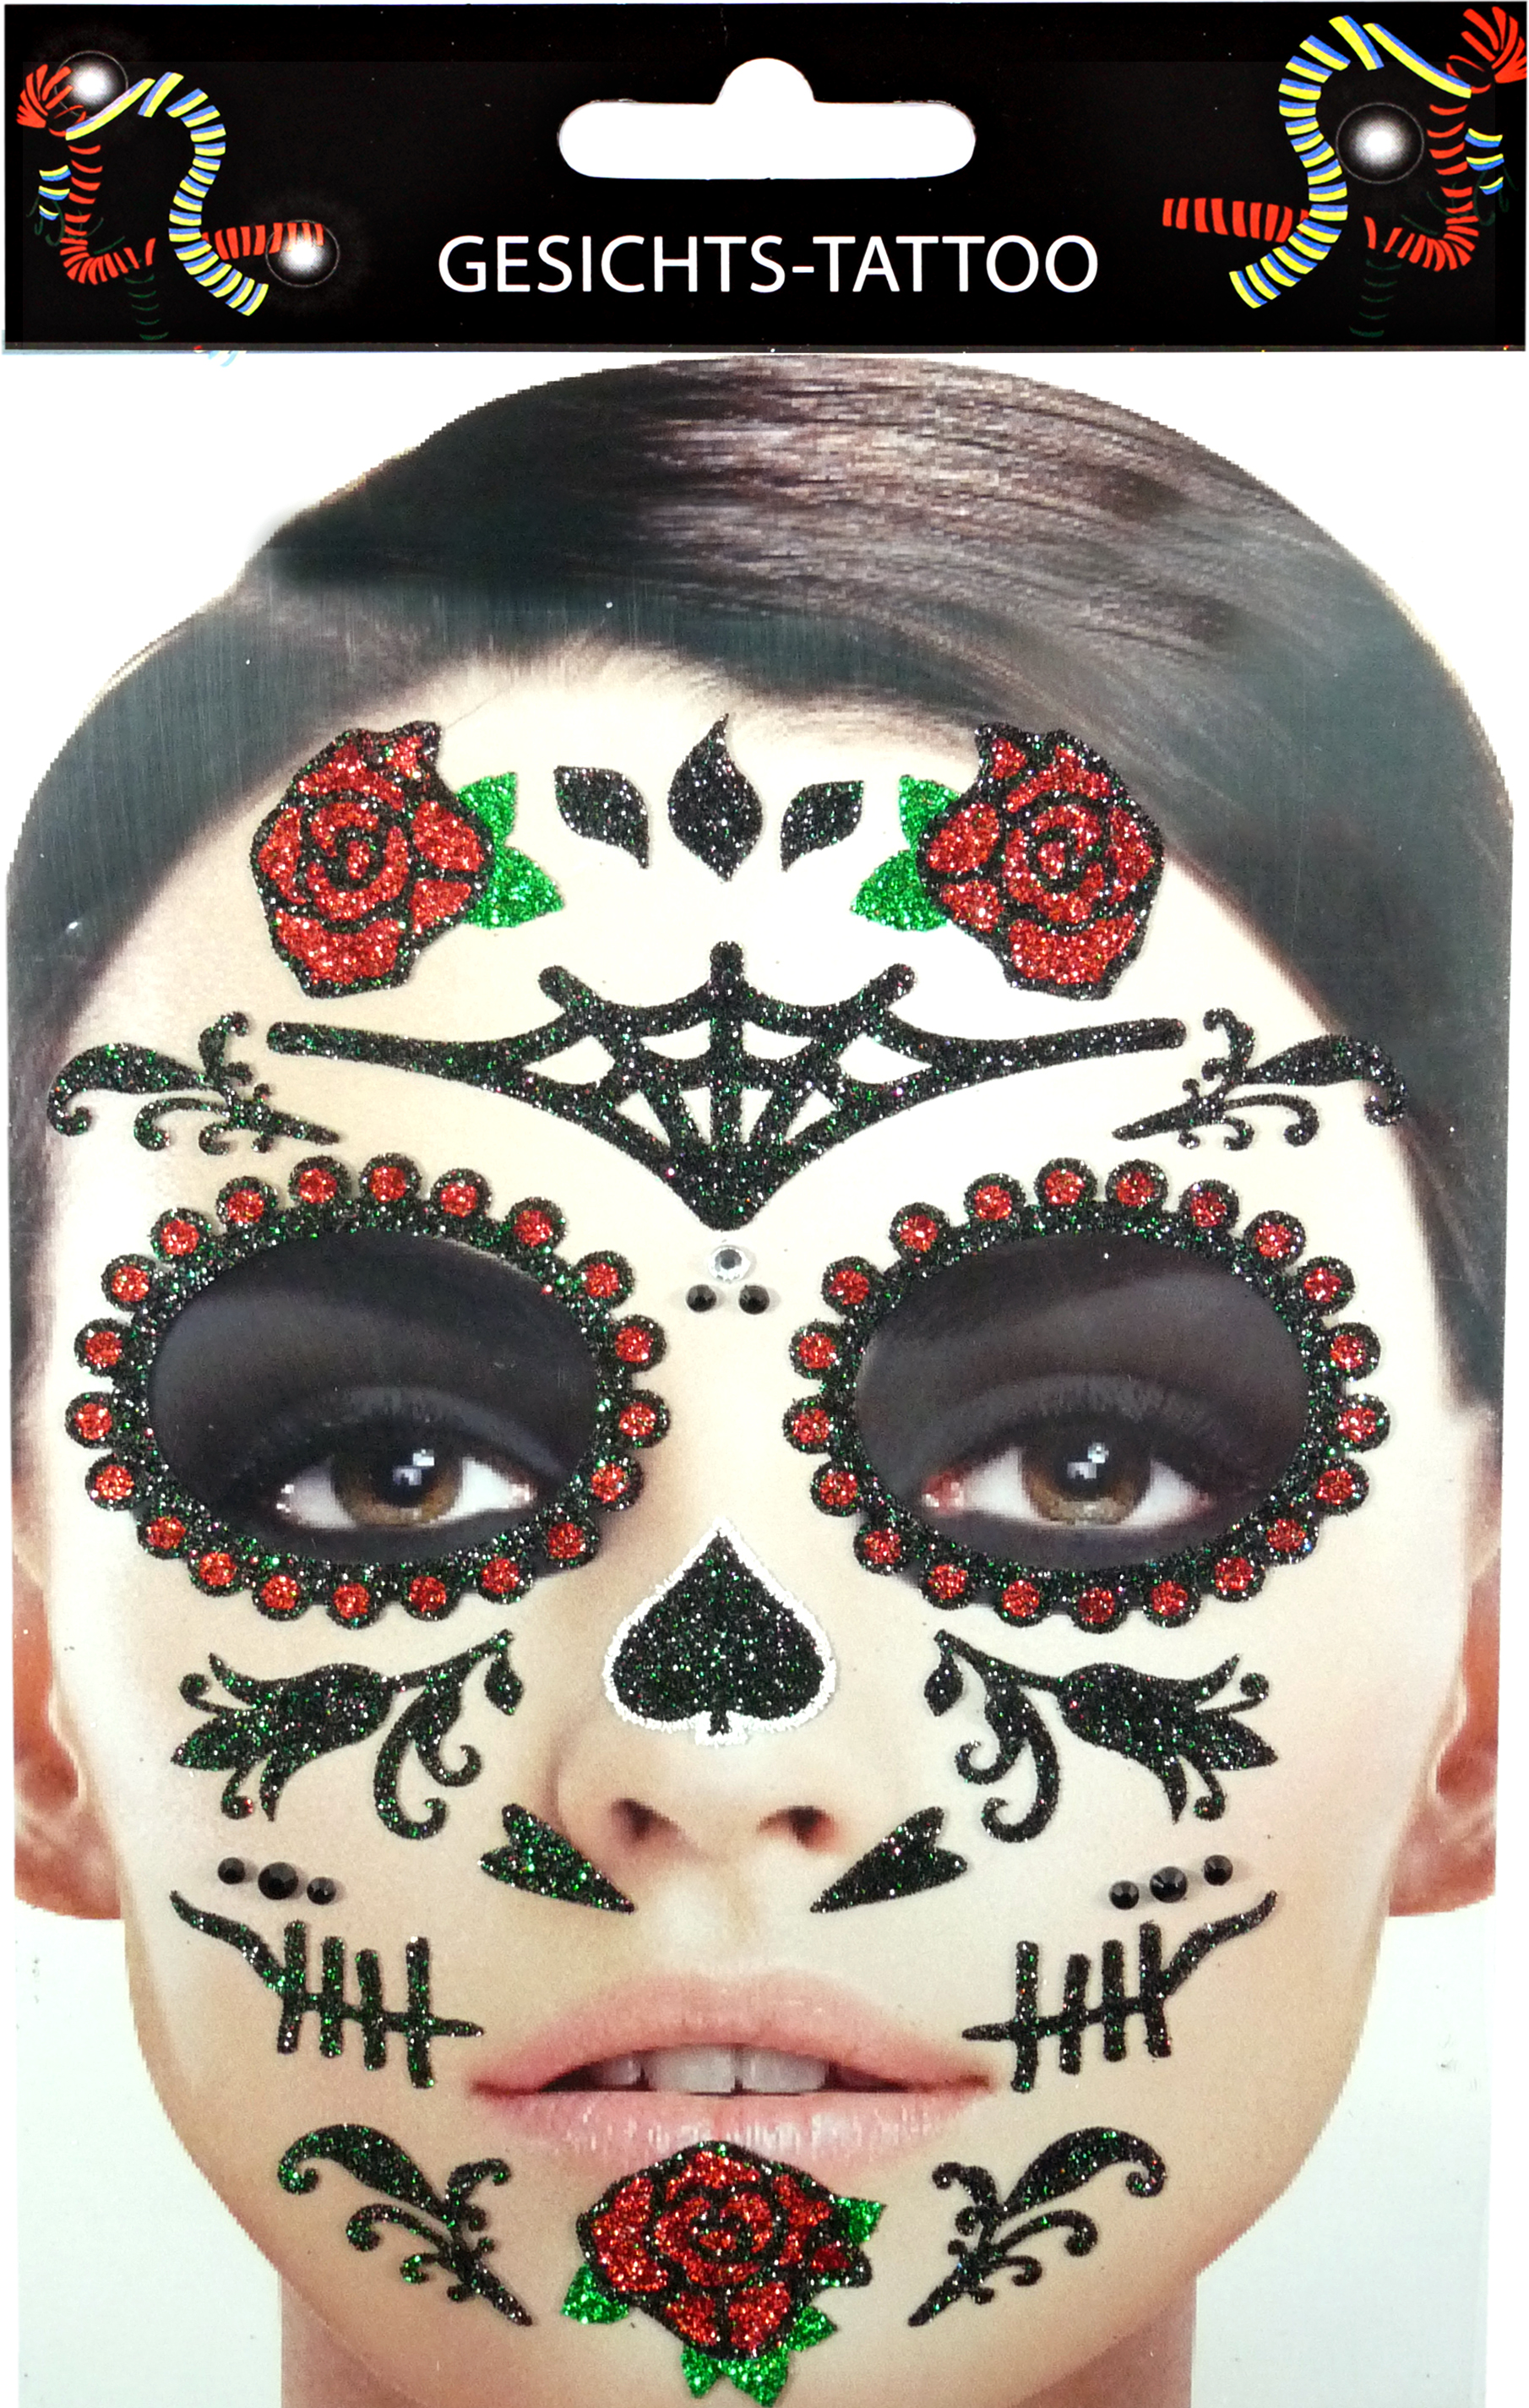 Gesichts-Tattoo Day of the Dead Rosen